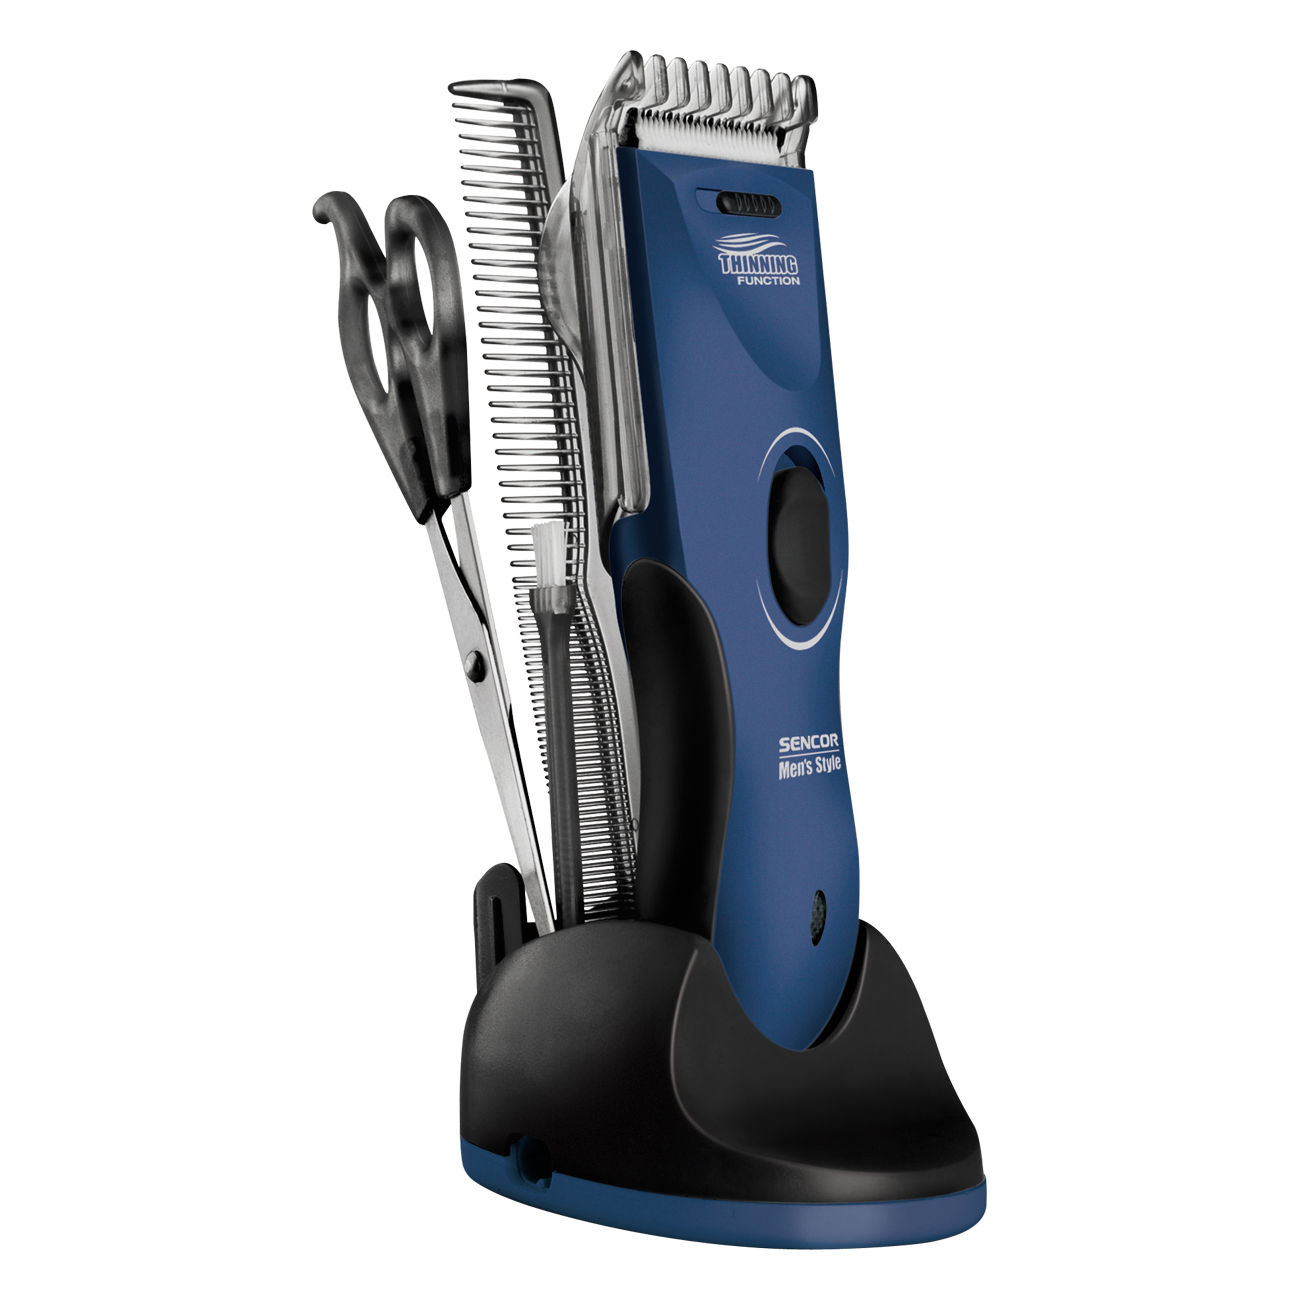 Hair clippers png. Clipper shp sencor let